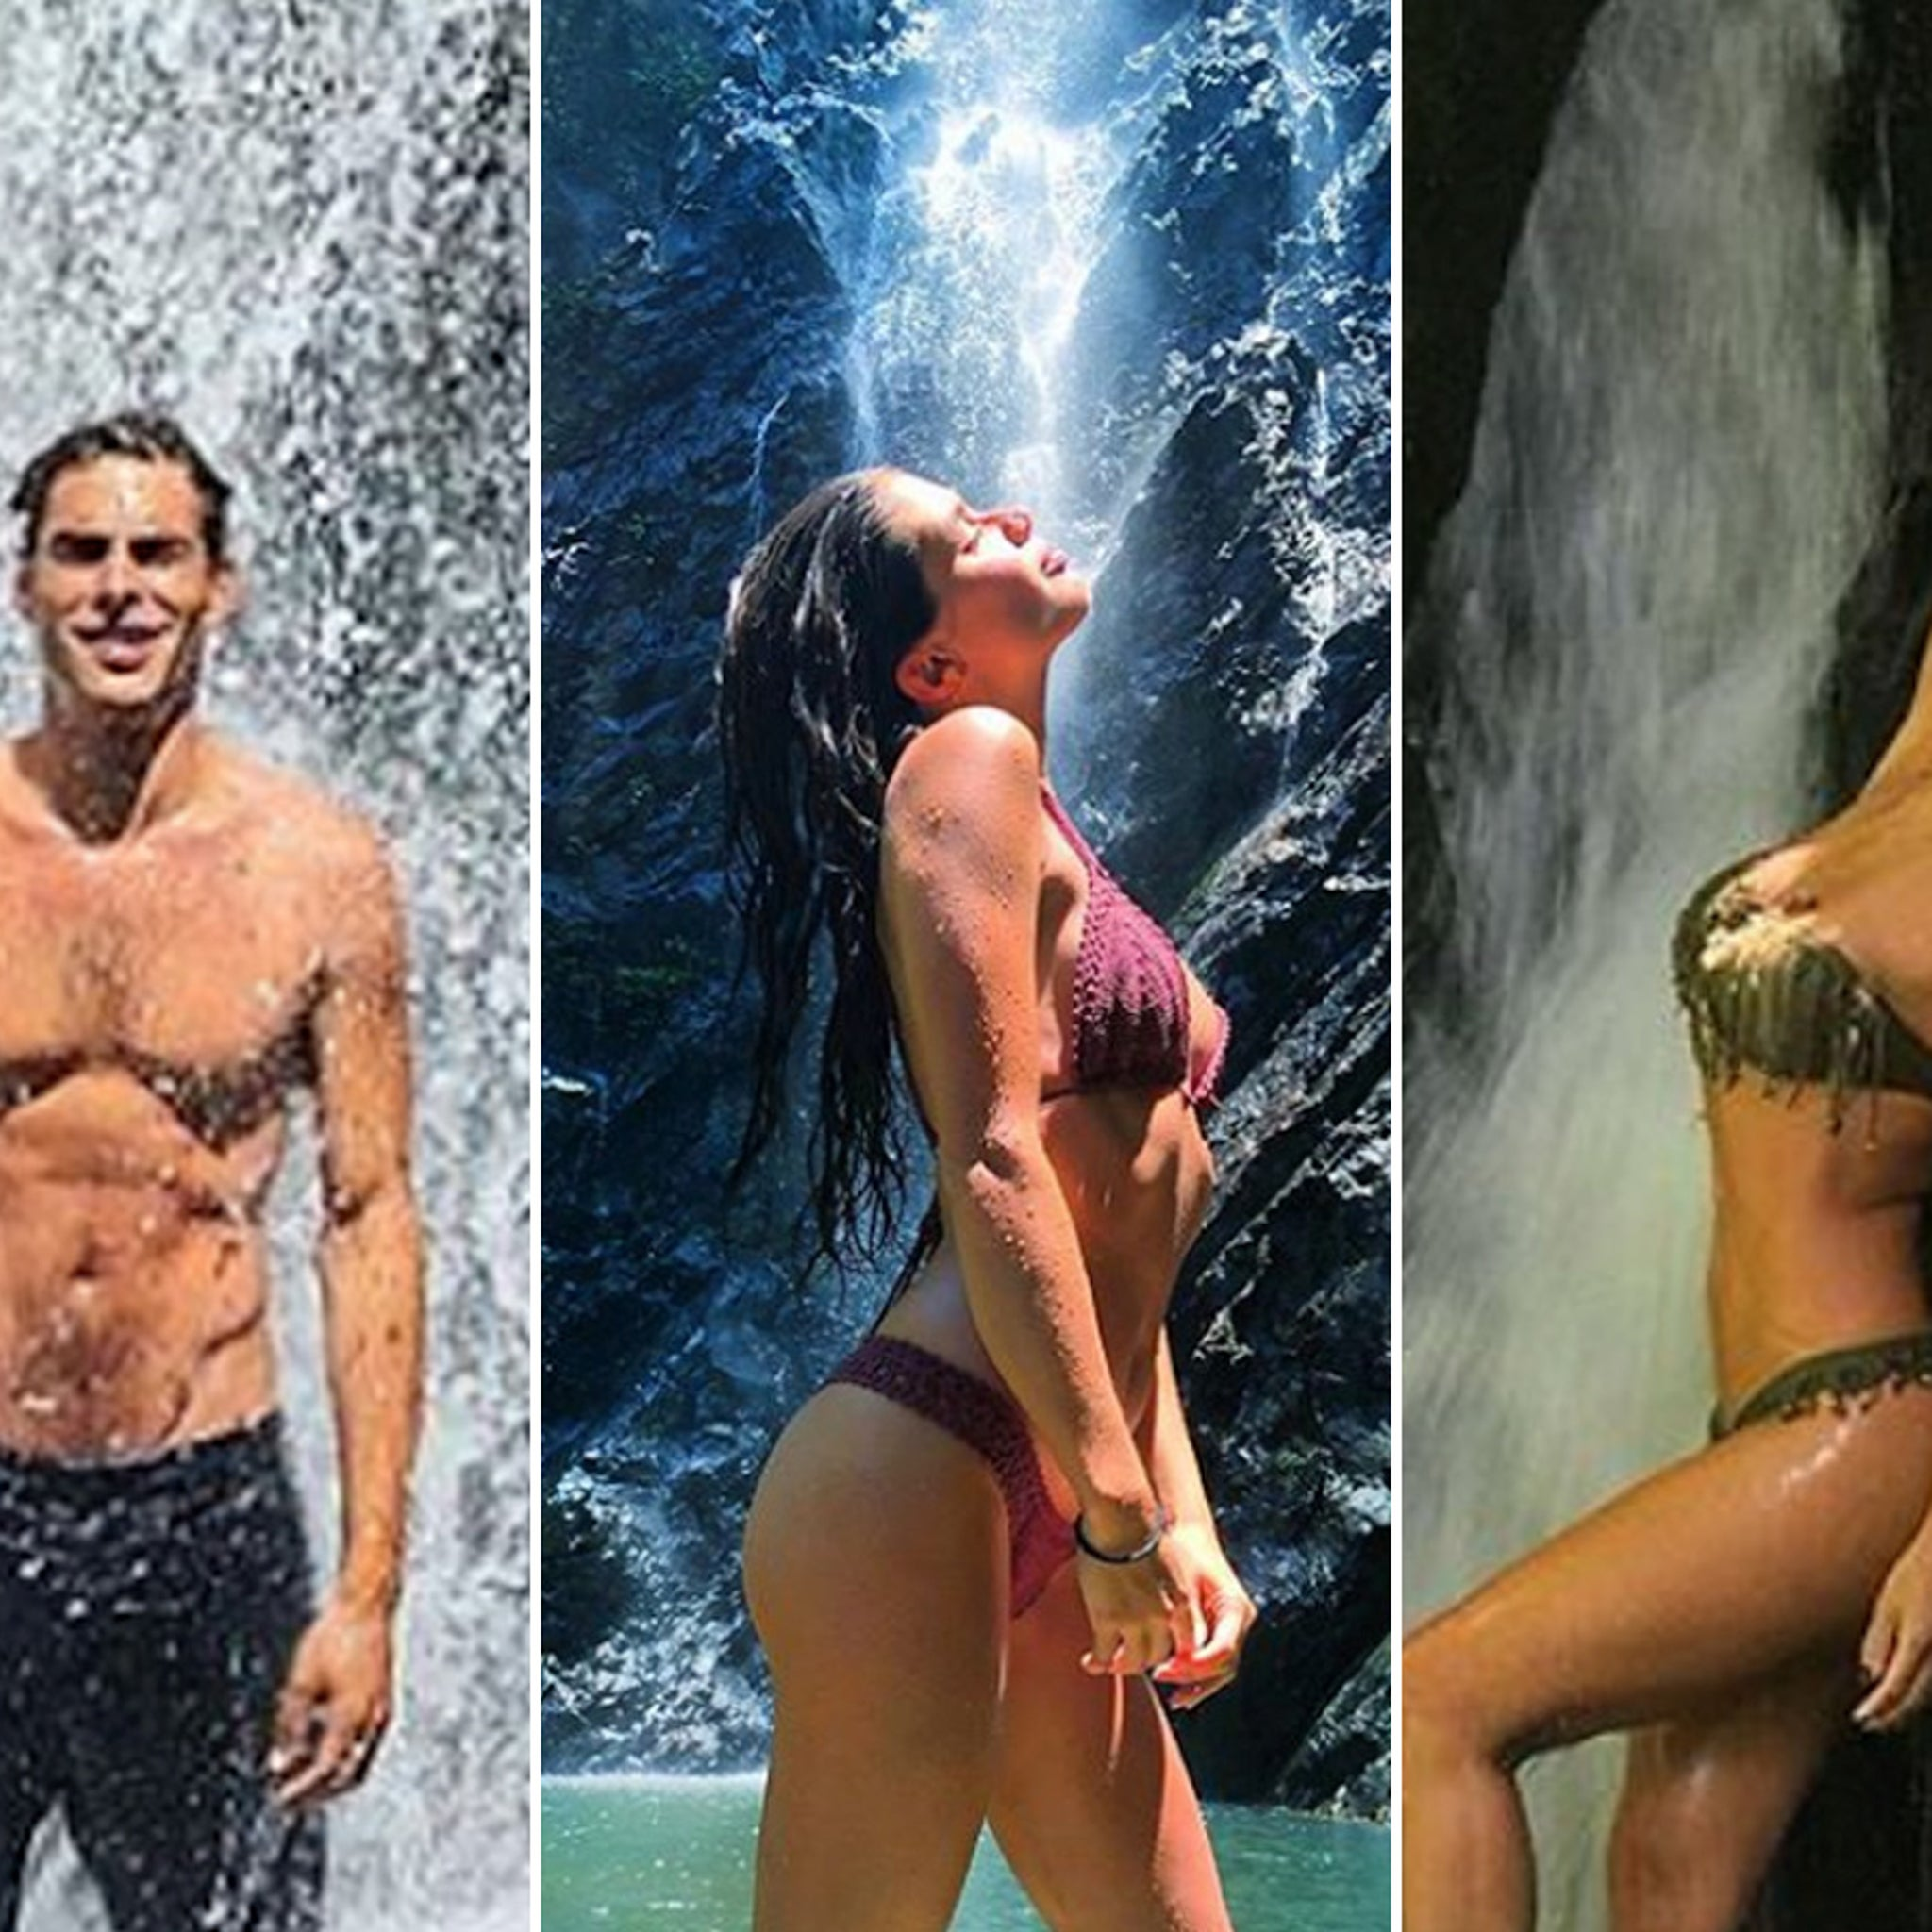 Waterfall For These Hot Stars!